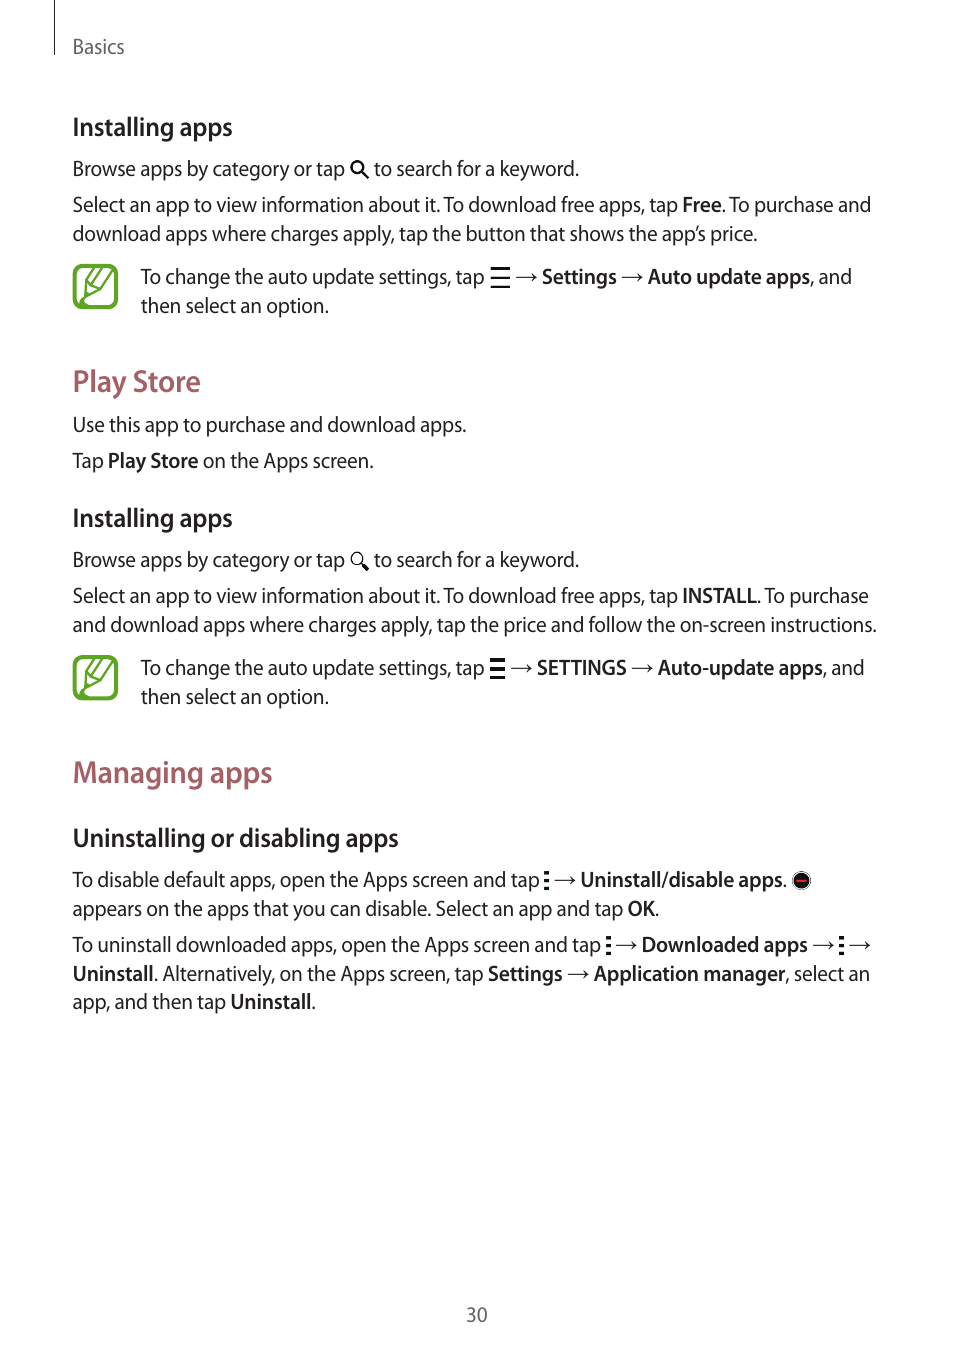 Play store, Managing apps, Installing apps | Uninstalling or disabling apps  | Samsung Galaxy